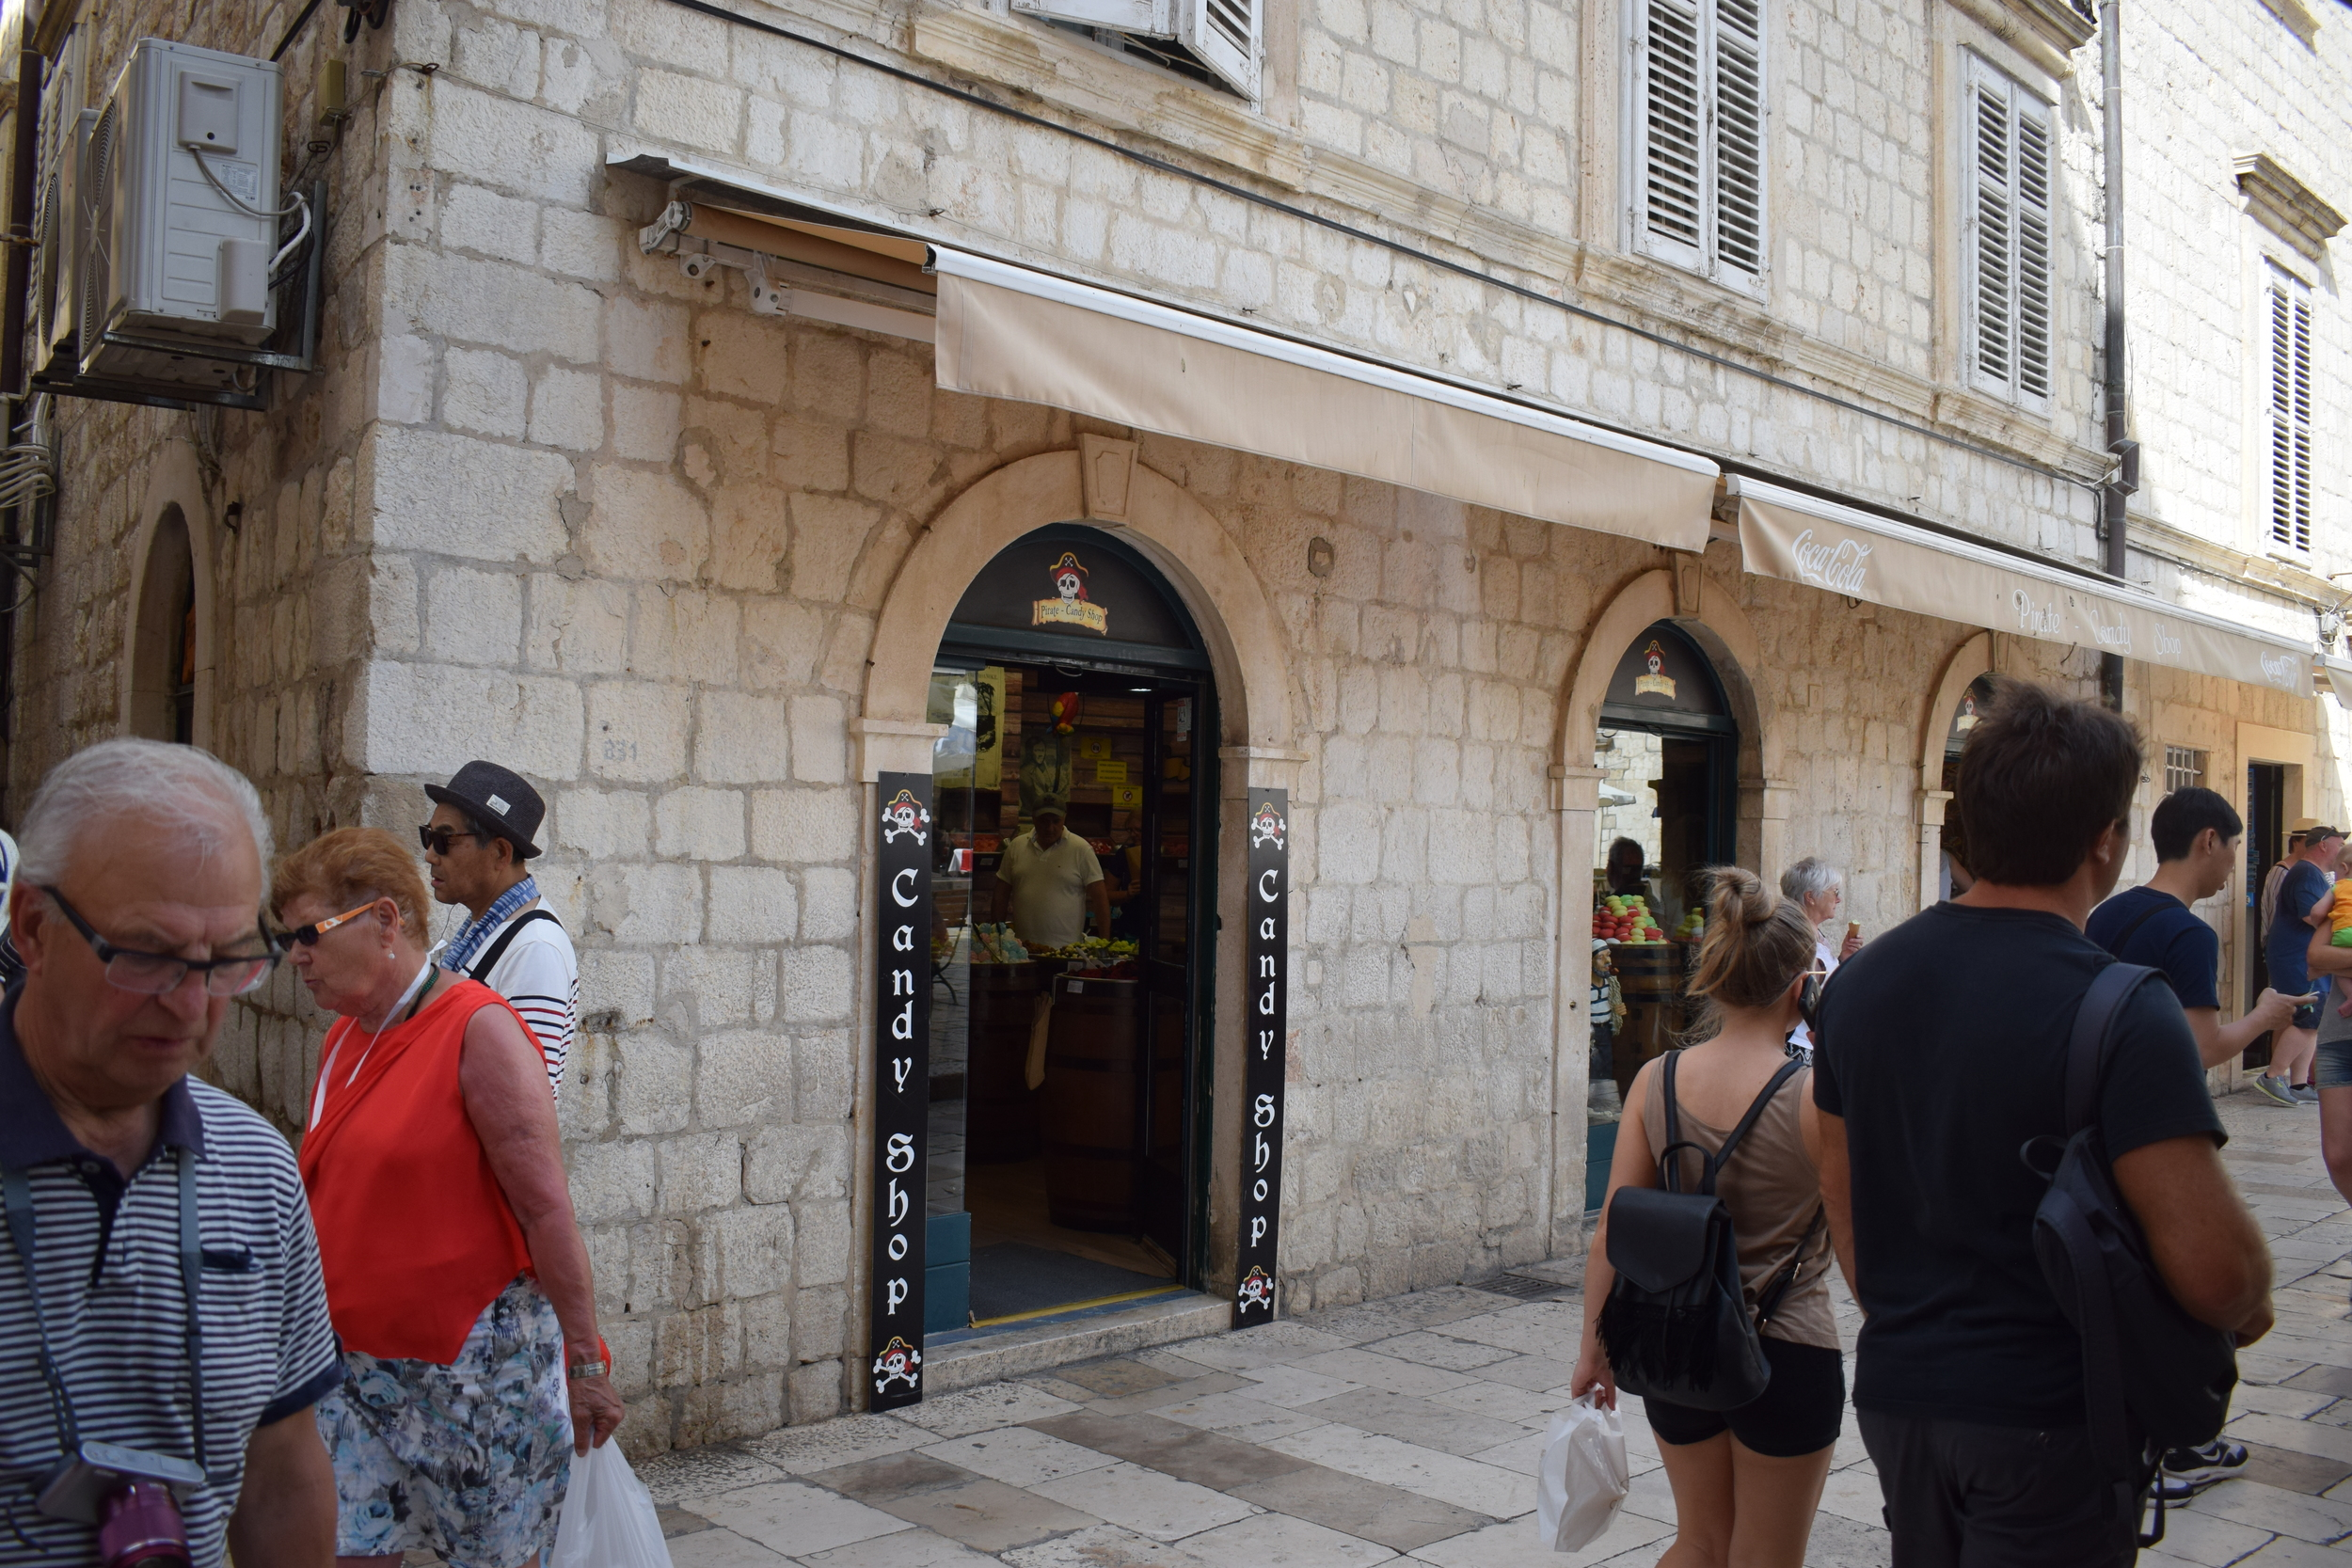 Pirate Candy Store's exterior on Stradun, Old Town's busiest street.